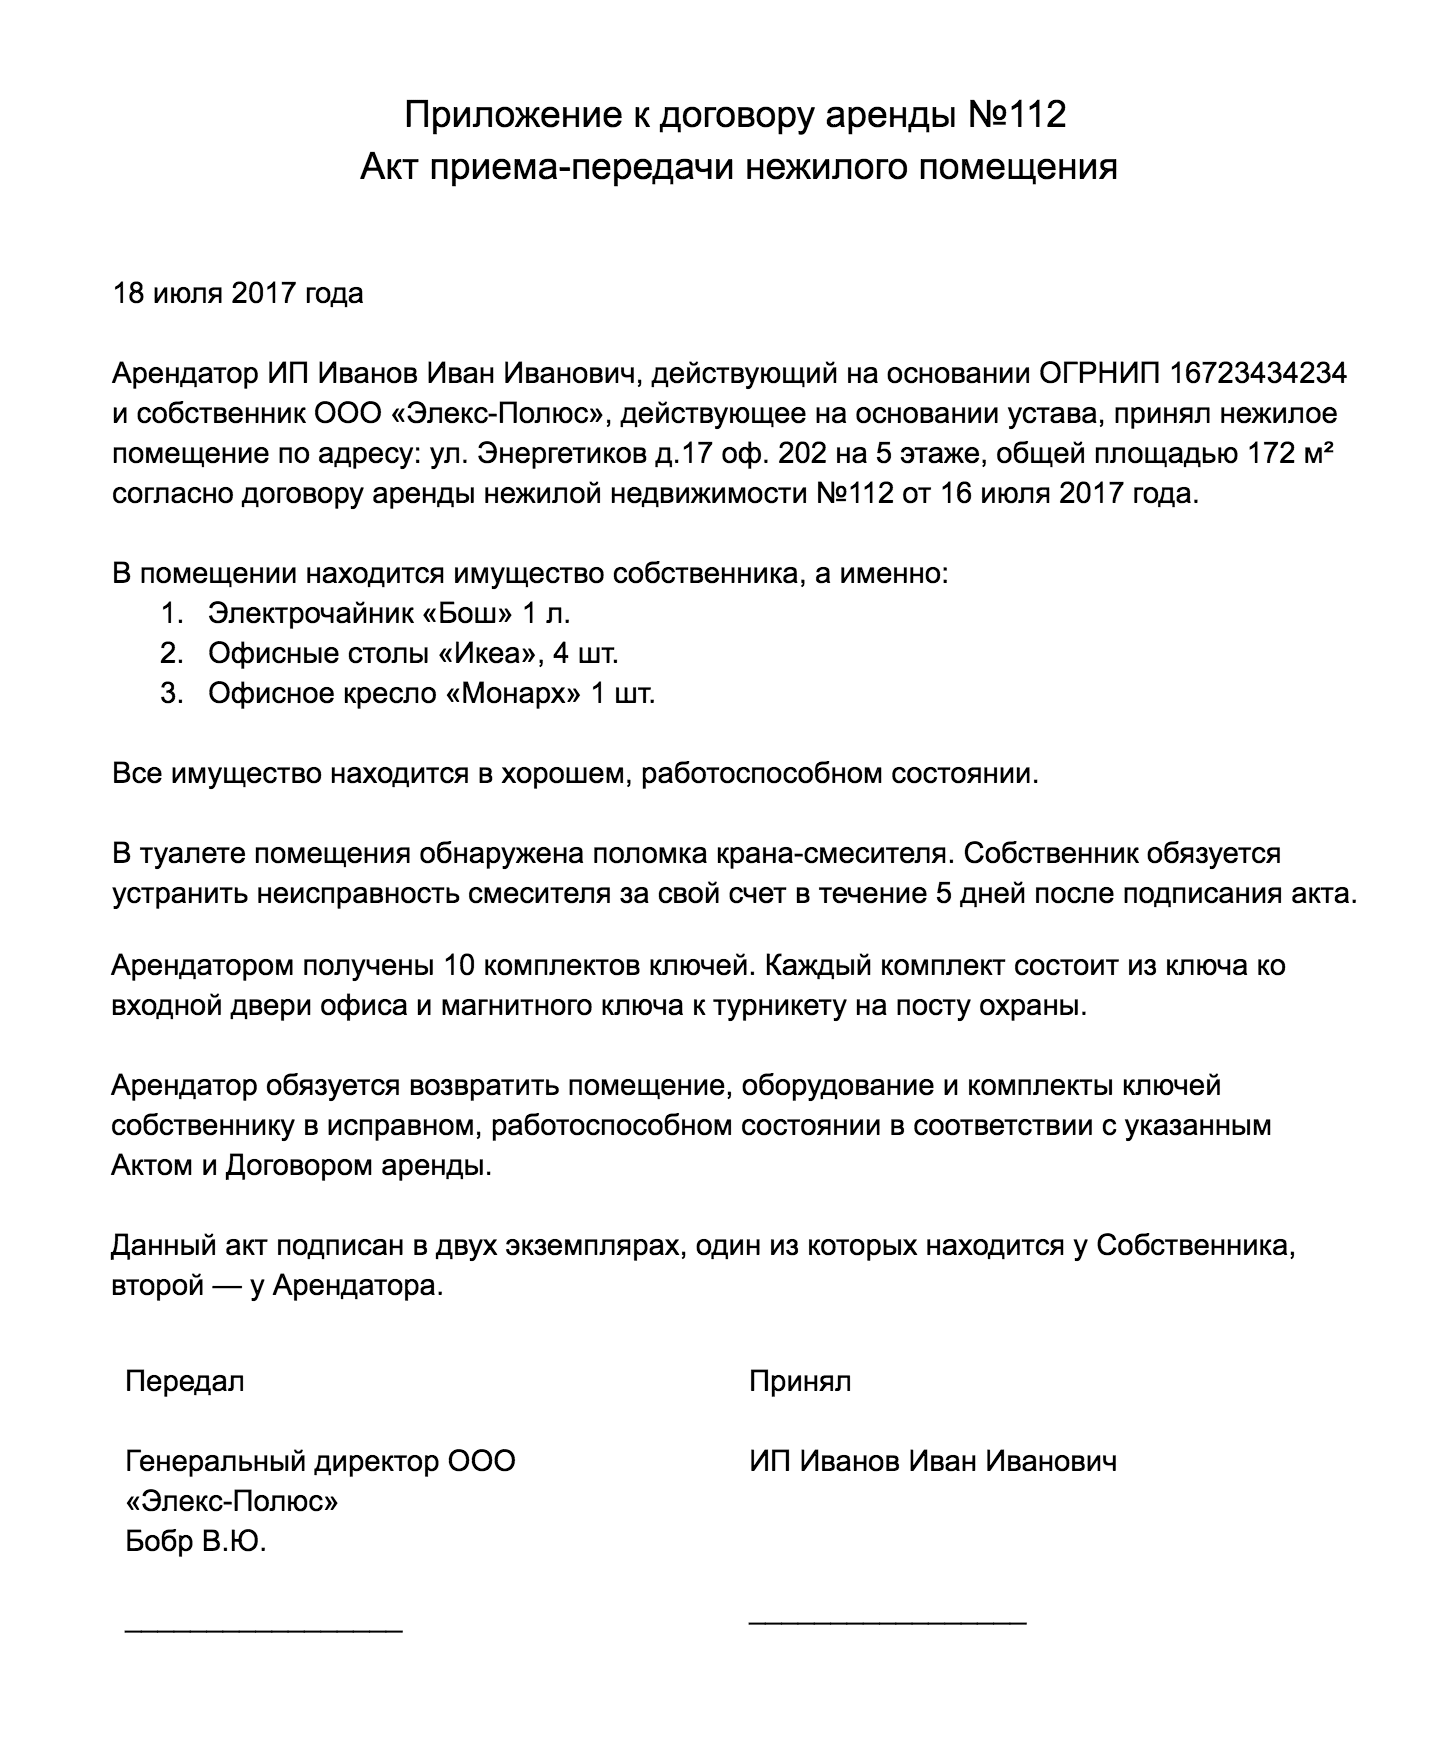 {Шаблон акта приемки коммерческого помещения}(https://docs.google.com/document/d/1whlMS1iuds-iJXc7bJSHS6_6QrRUeAy_G5e4hsg0AQg/edit?usp=sharing)